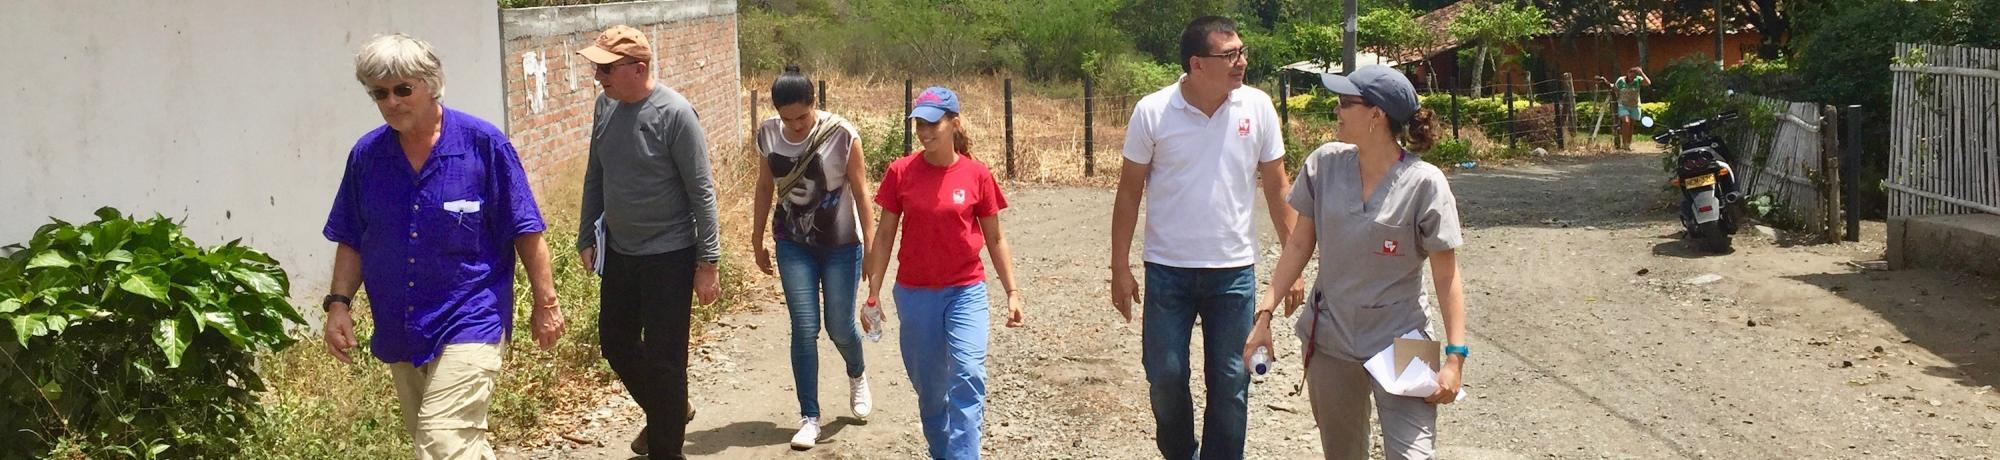 Faculty walking, working together in Colombia